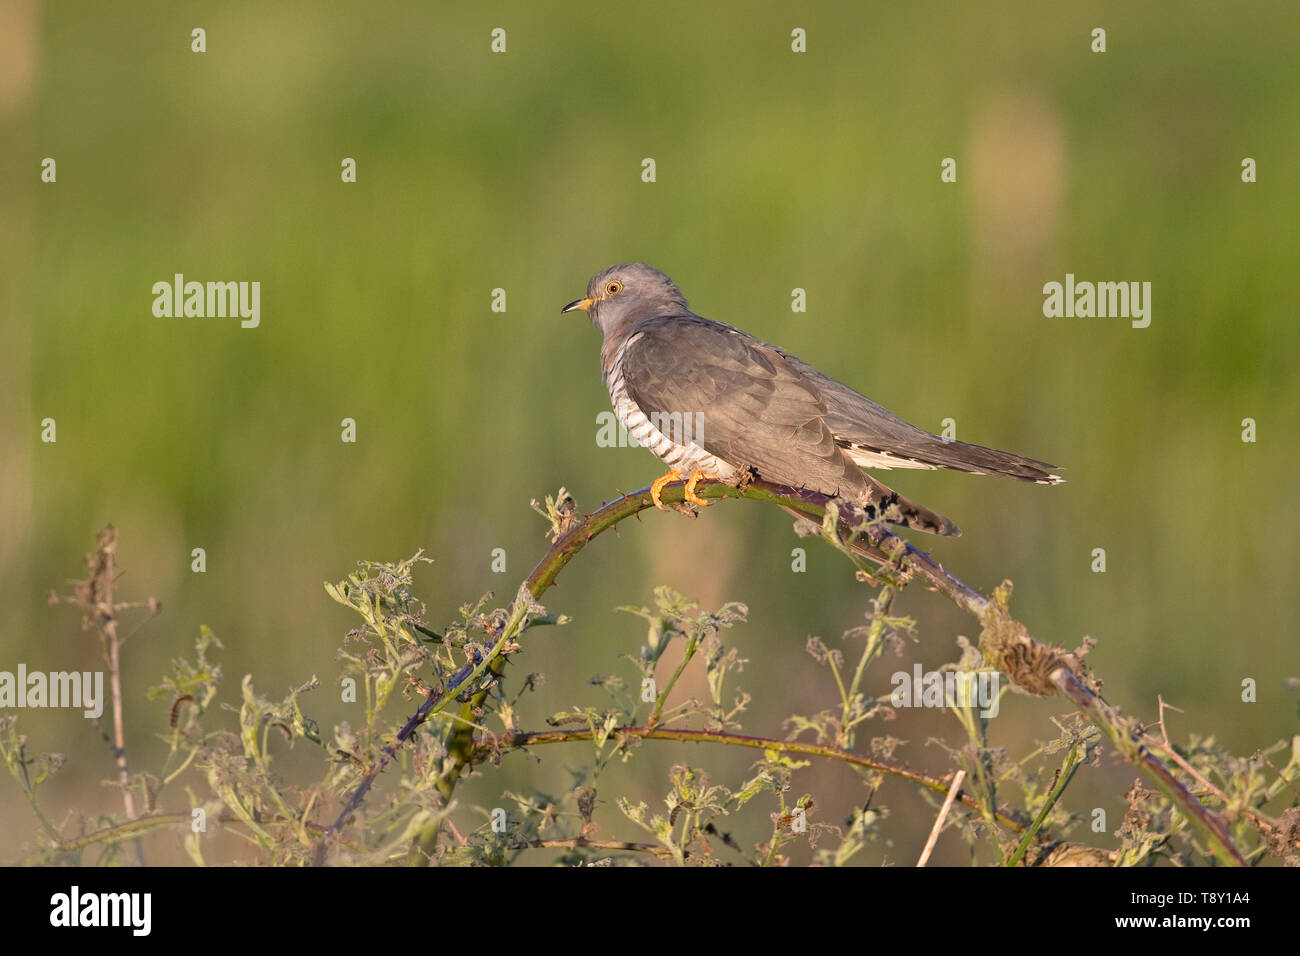 Common Cuckoo (Cuculus canorus) - Stock Image